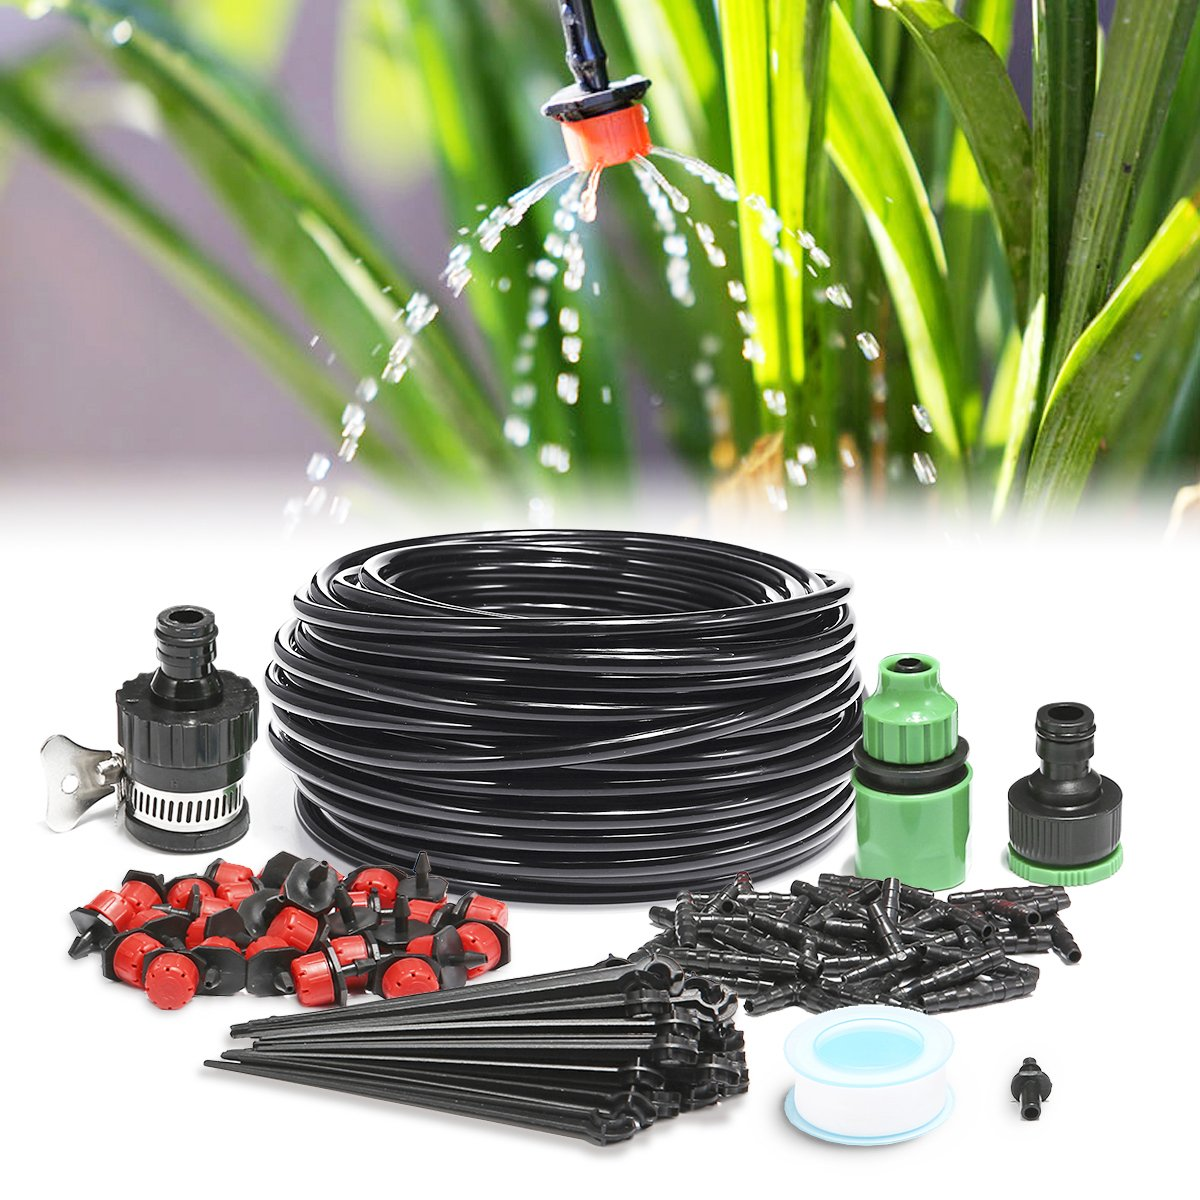 KINGSO 82ft Micro Drip Irrigation Kit System Blank Distribution Tubing Irrigation Sprinkler System Kit Self Plant Garden Hose Watering Kit (25M Dripper)